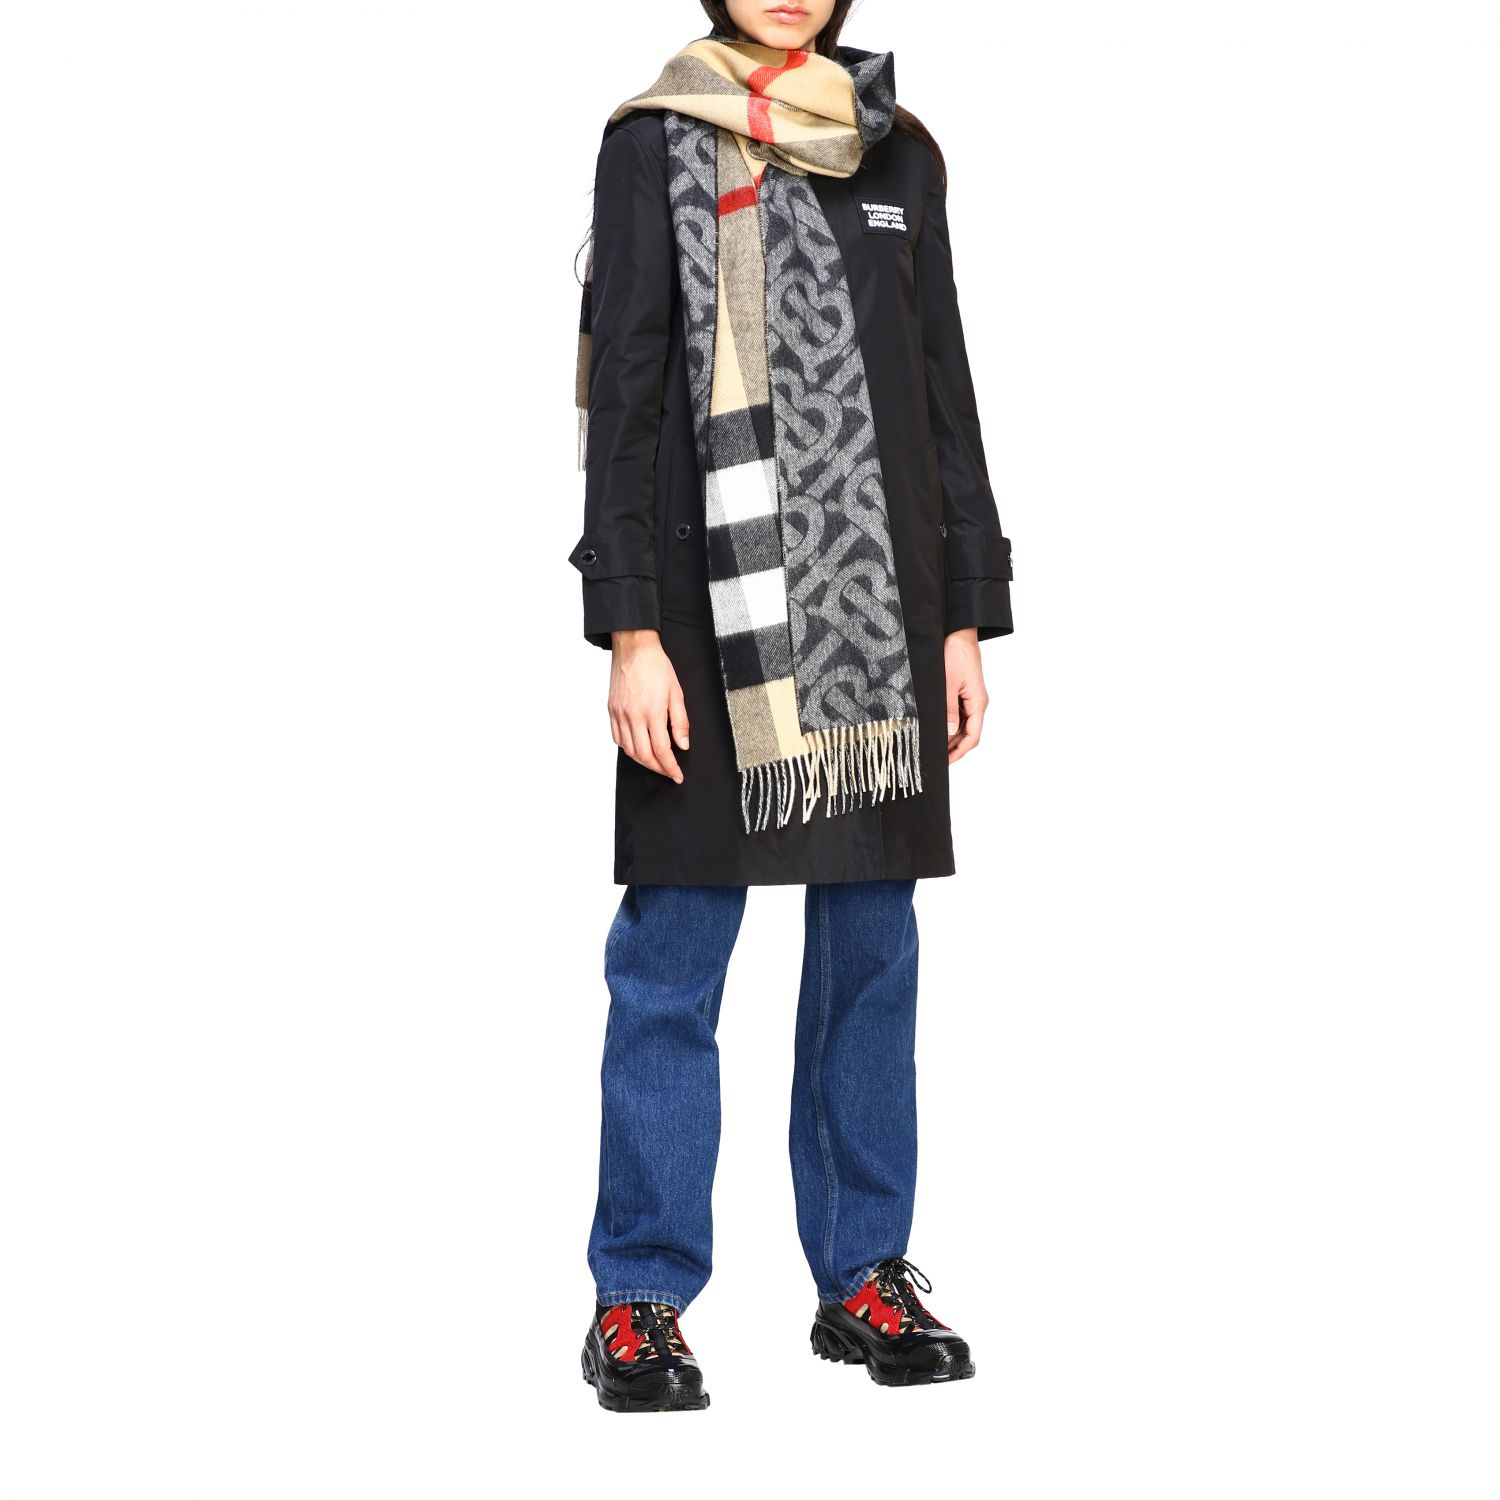 Burberry double-sided cashmere scarf with TB logo and check motif beige 2